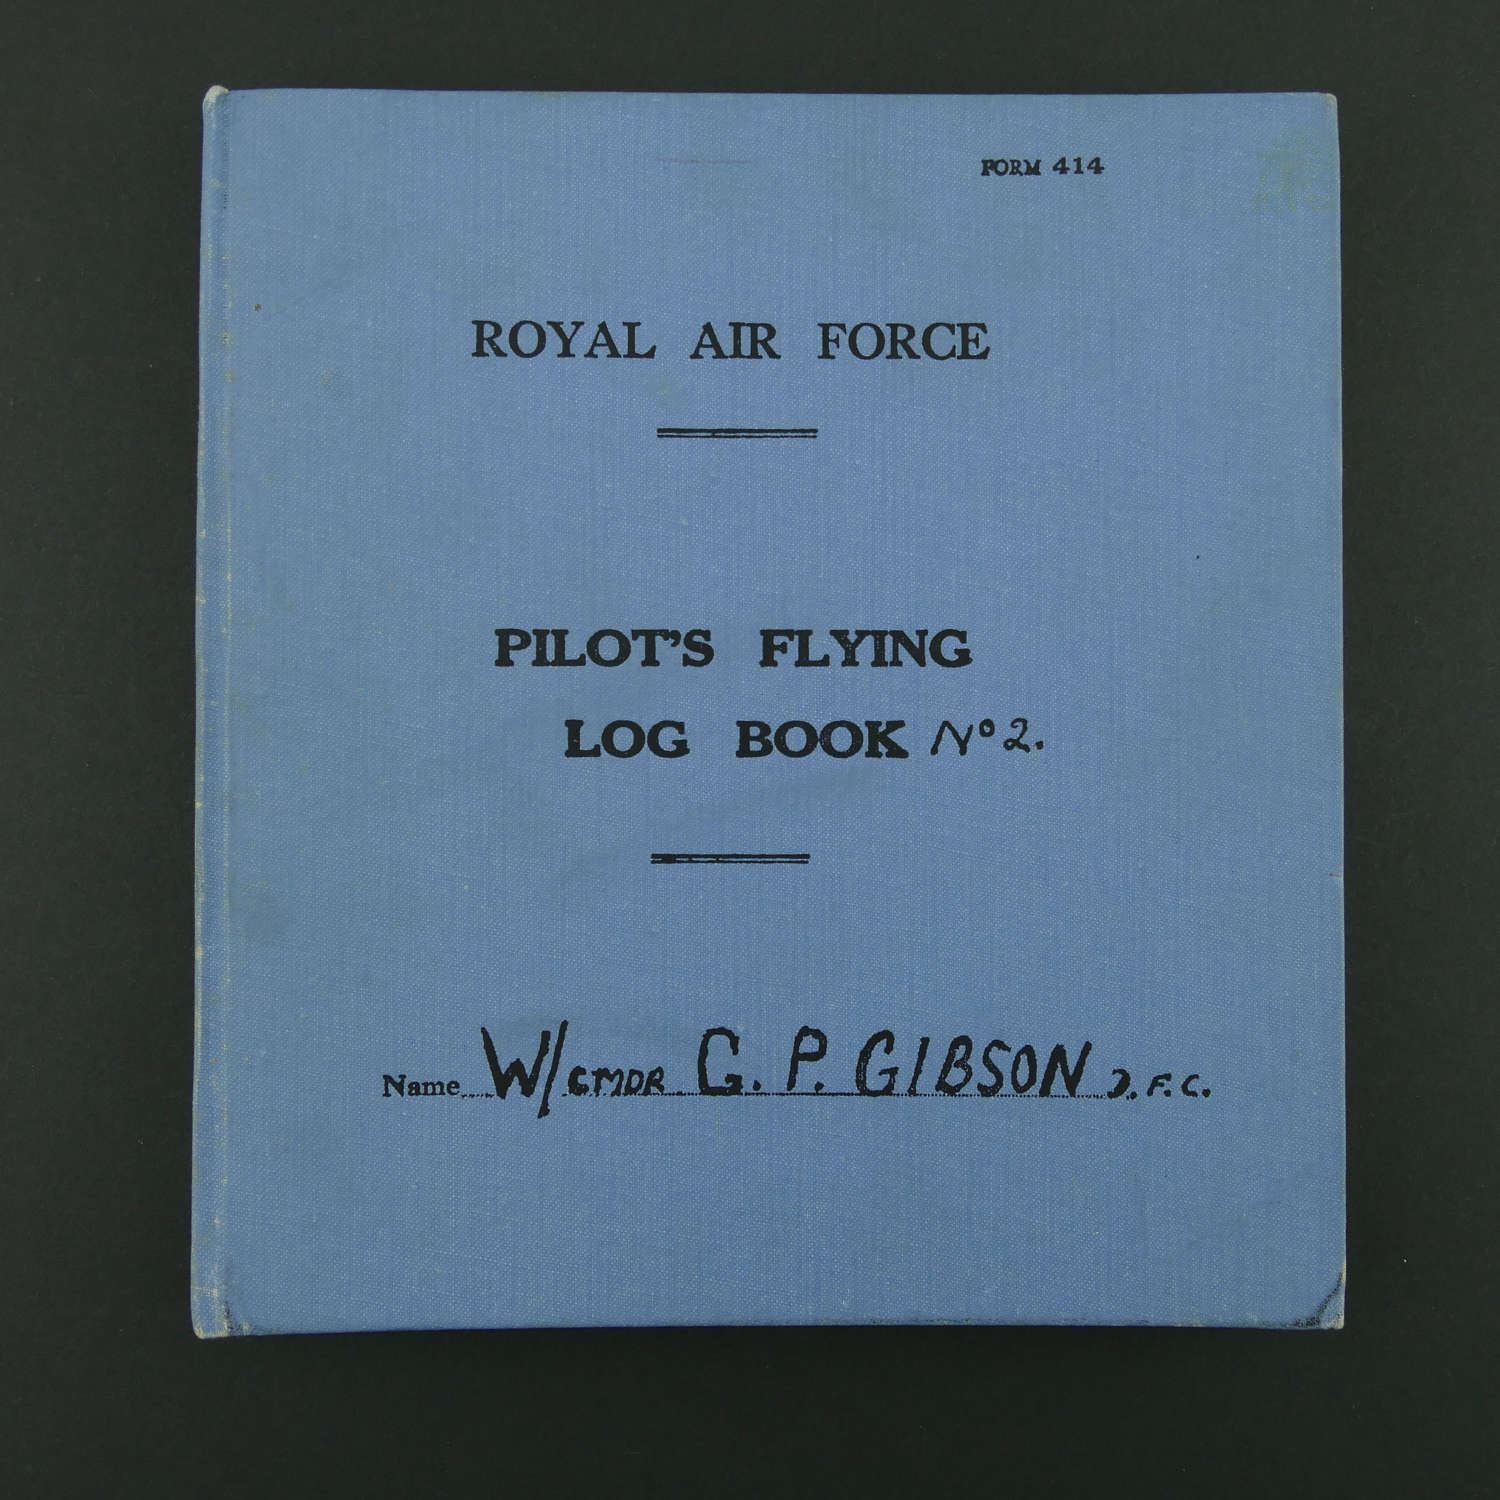 Wing Commander Guy Gibson, log book No.2